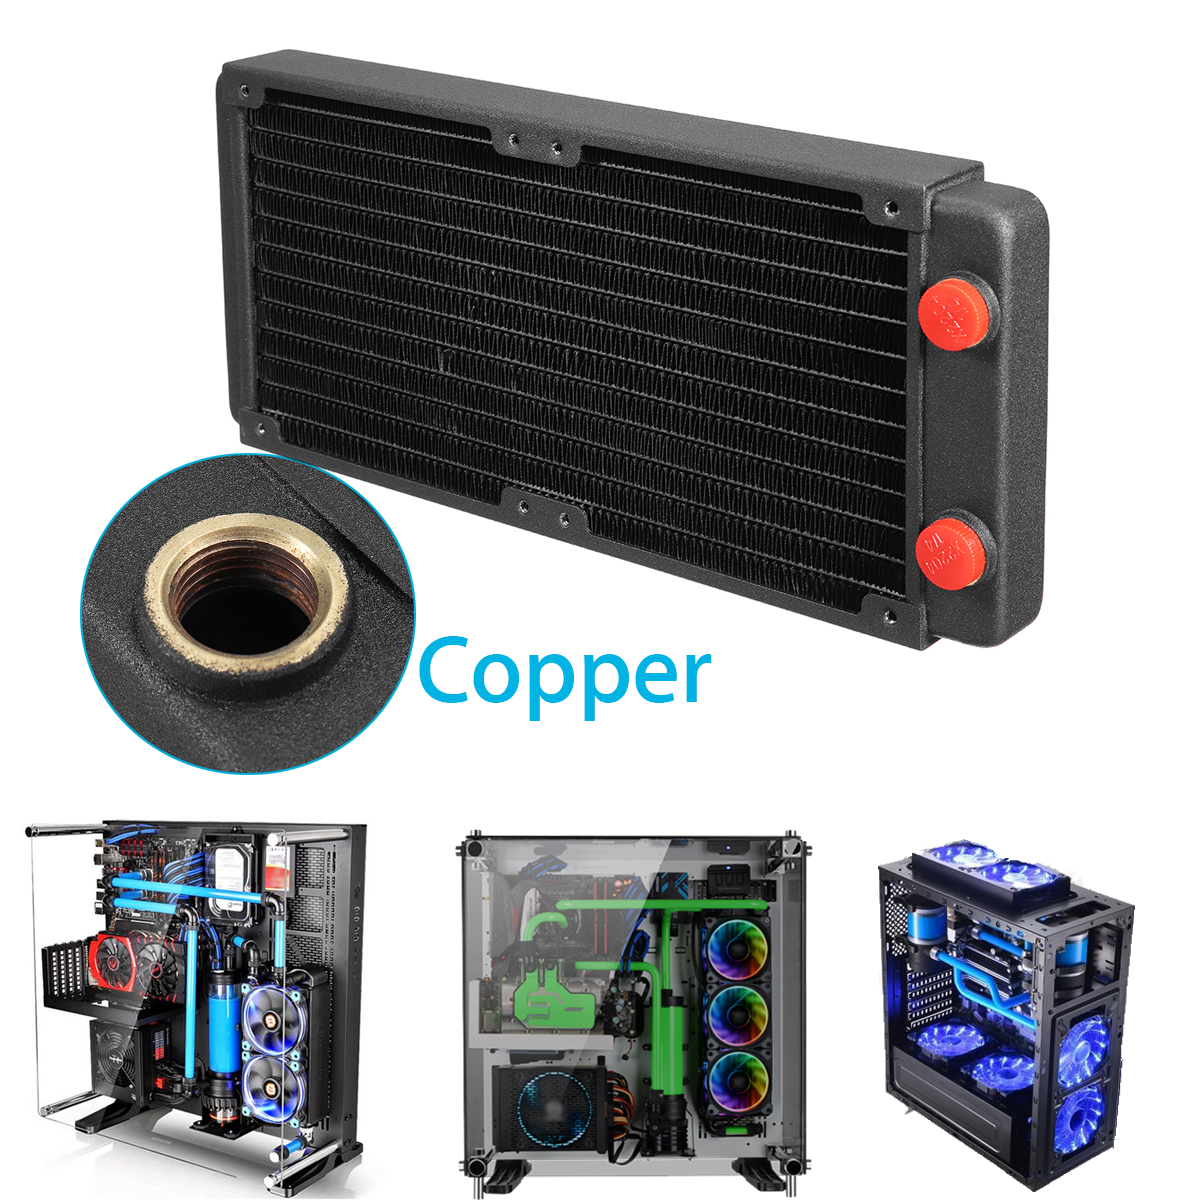 Copper Water Cooling 240mm Computer CPU Cooler Radiator Heatsink Radiator Exhaust Heat Exchanger Water Cooling Cooler notebook graphics card thermal conductivity copper cooling copper 30 30 3 0mm pure copper computer heat fins 30x30x3 0 radiator